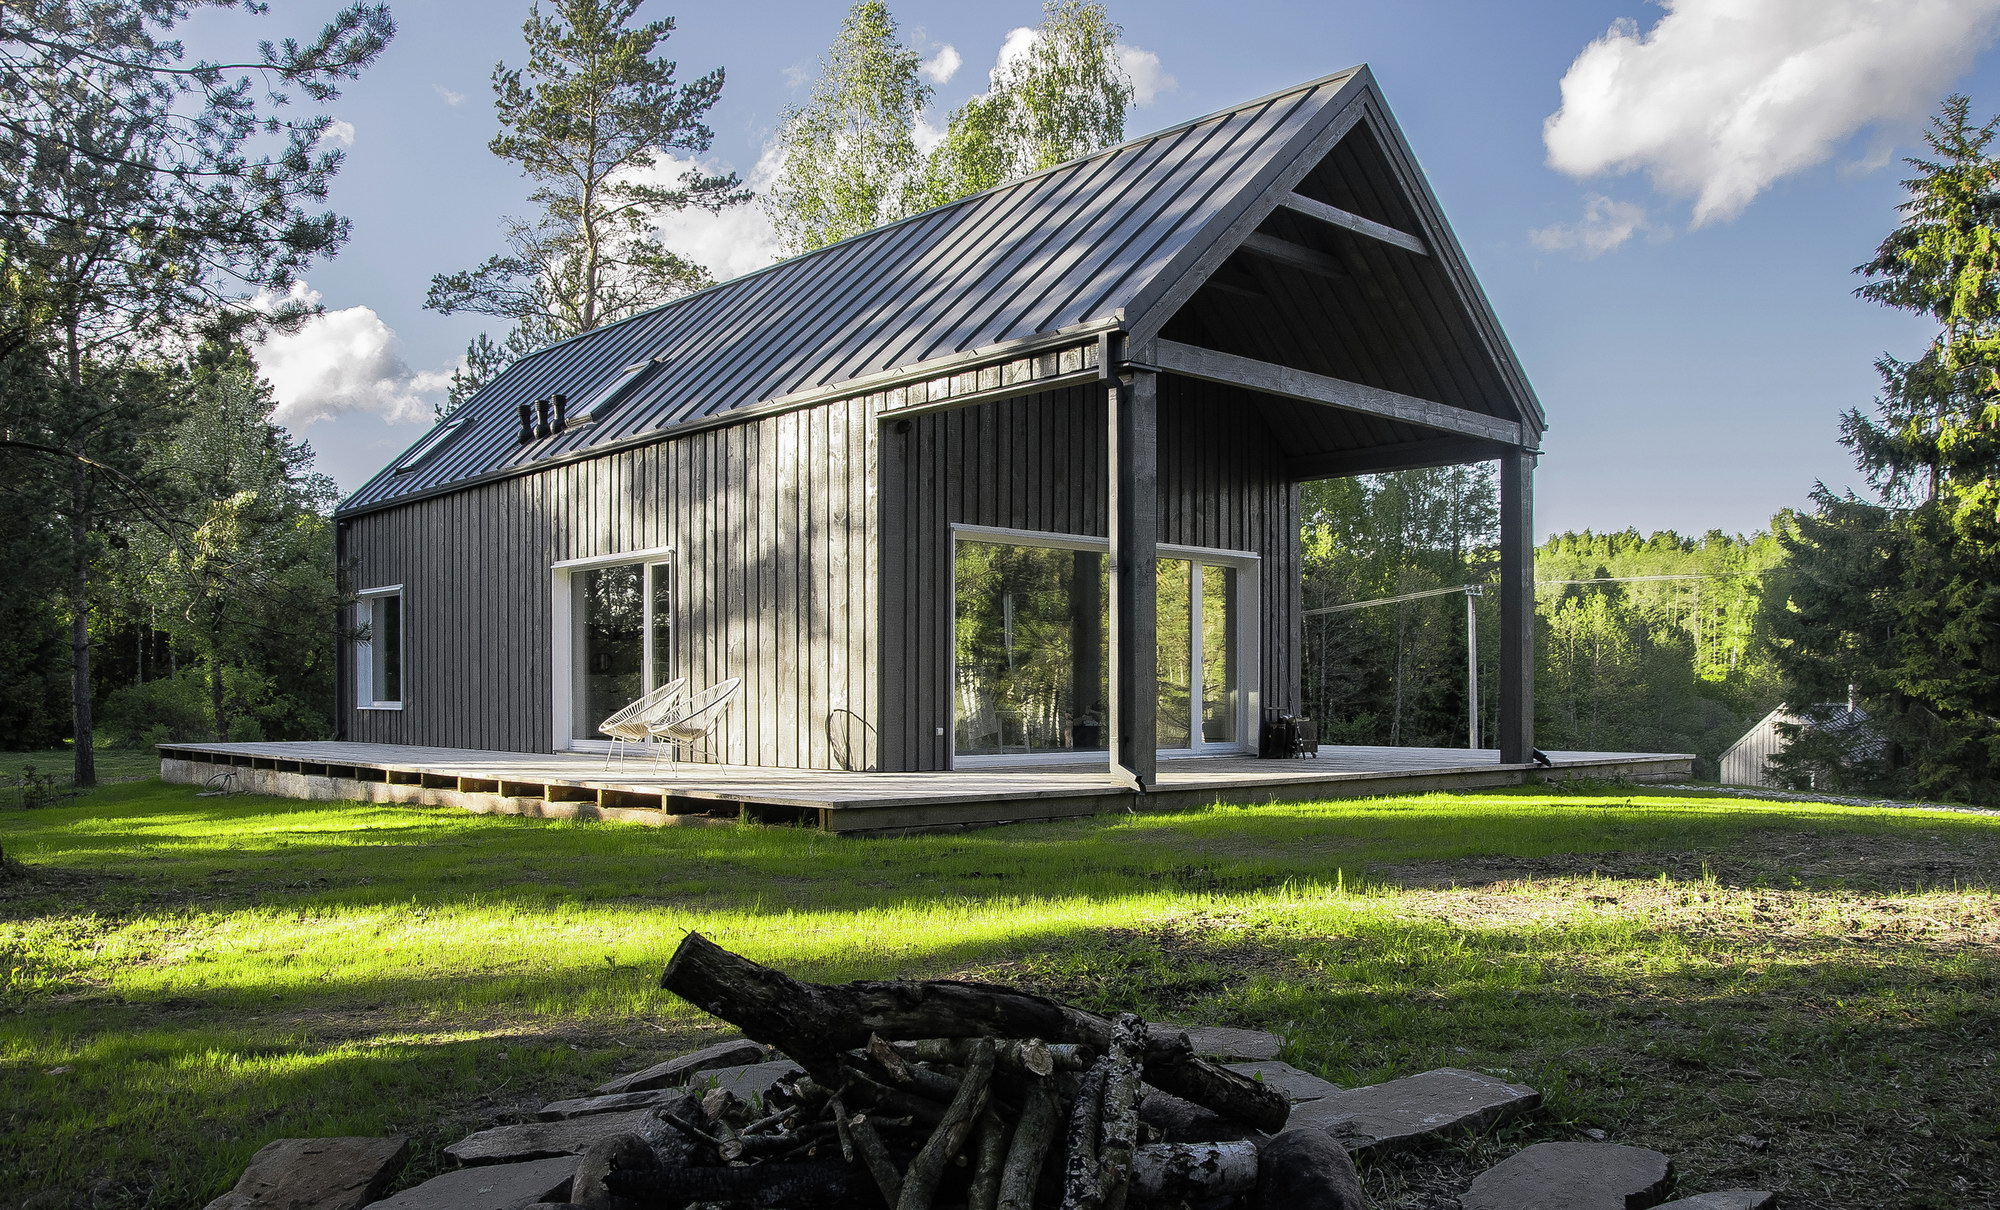 Lithuanian Hunting House by Devyni architektai